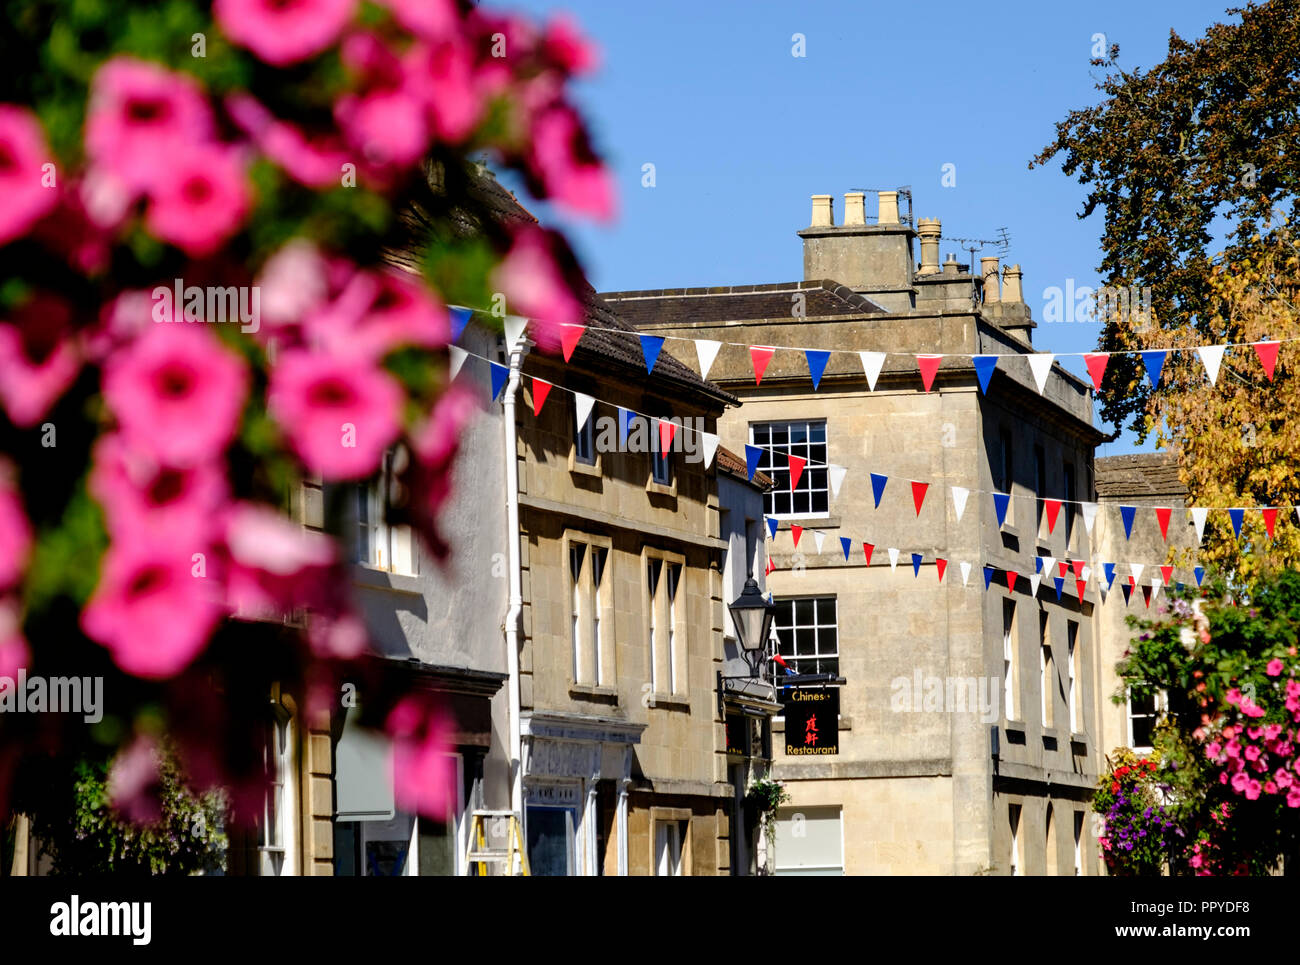 Corsham a small town in wiltshire near chippenham, England UK Stock Photo